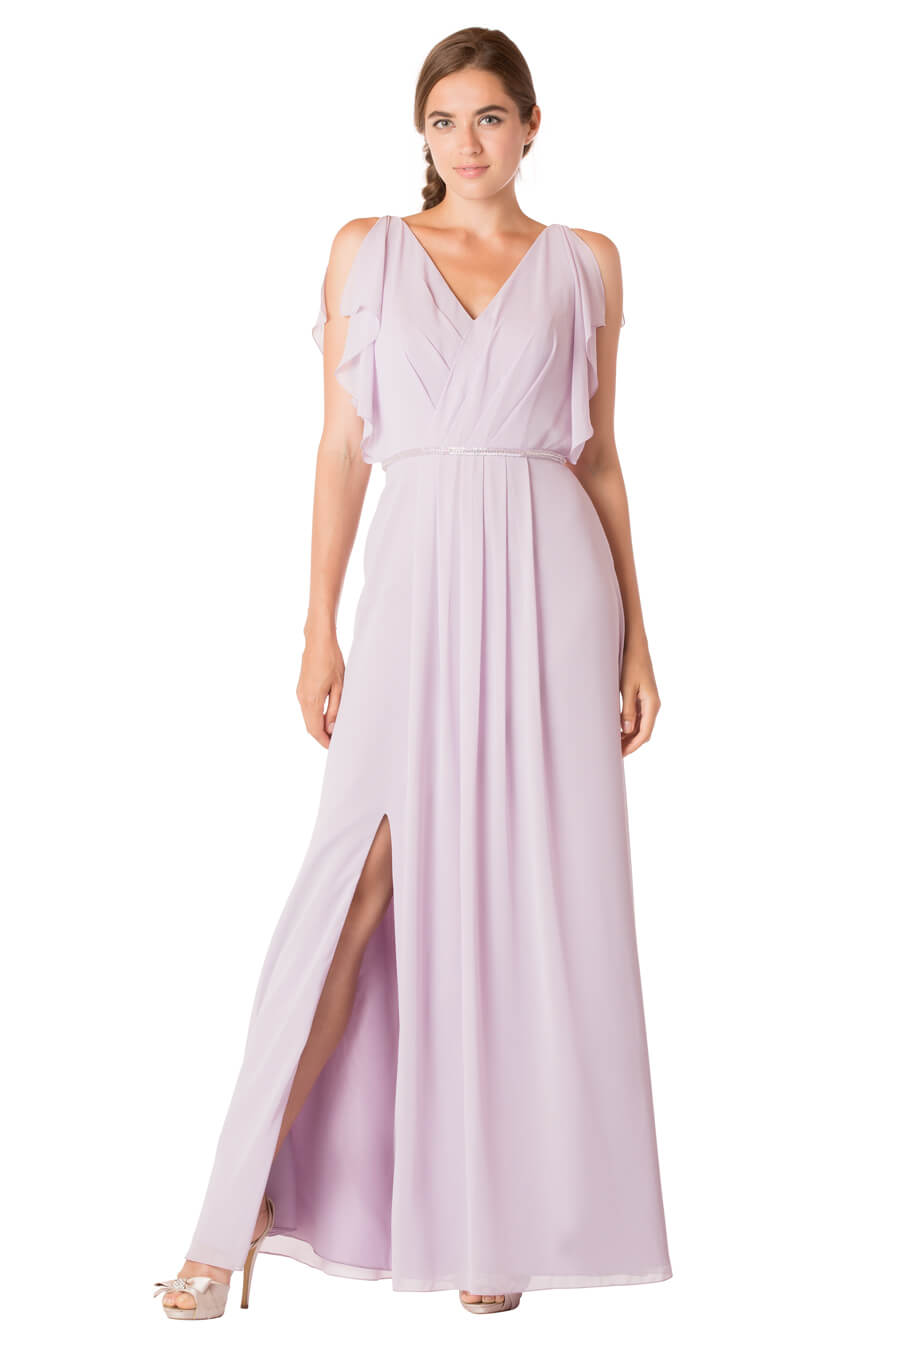 bcfb04b224ae9 Bari Jay Style 1700 Bridesmaid Dress & Evening Gow | Bridesmaid ...